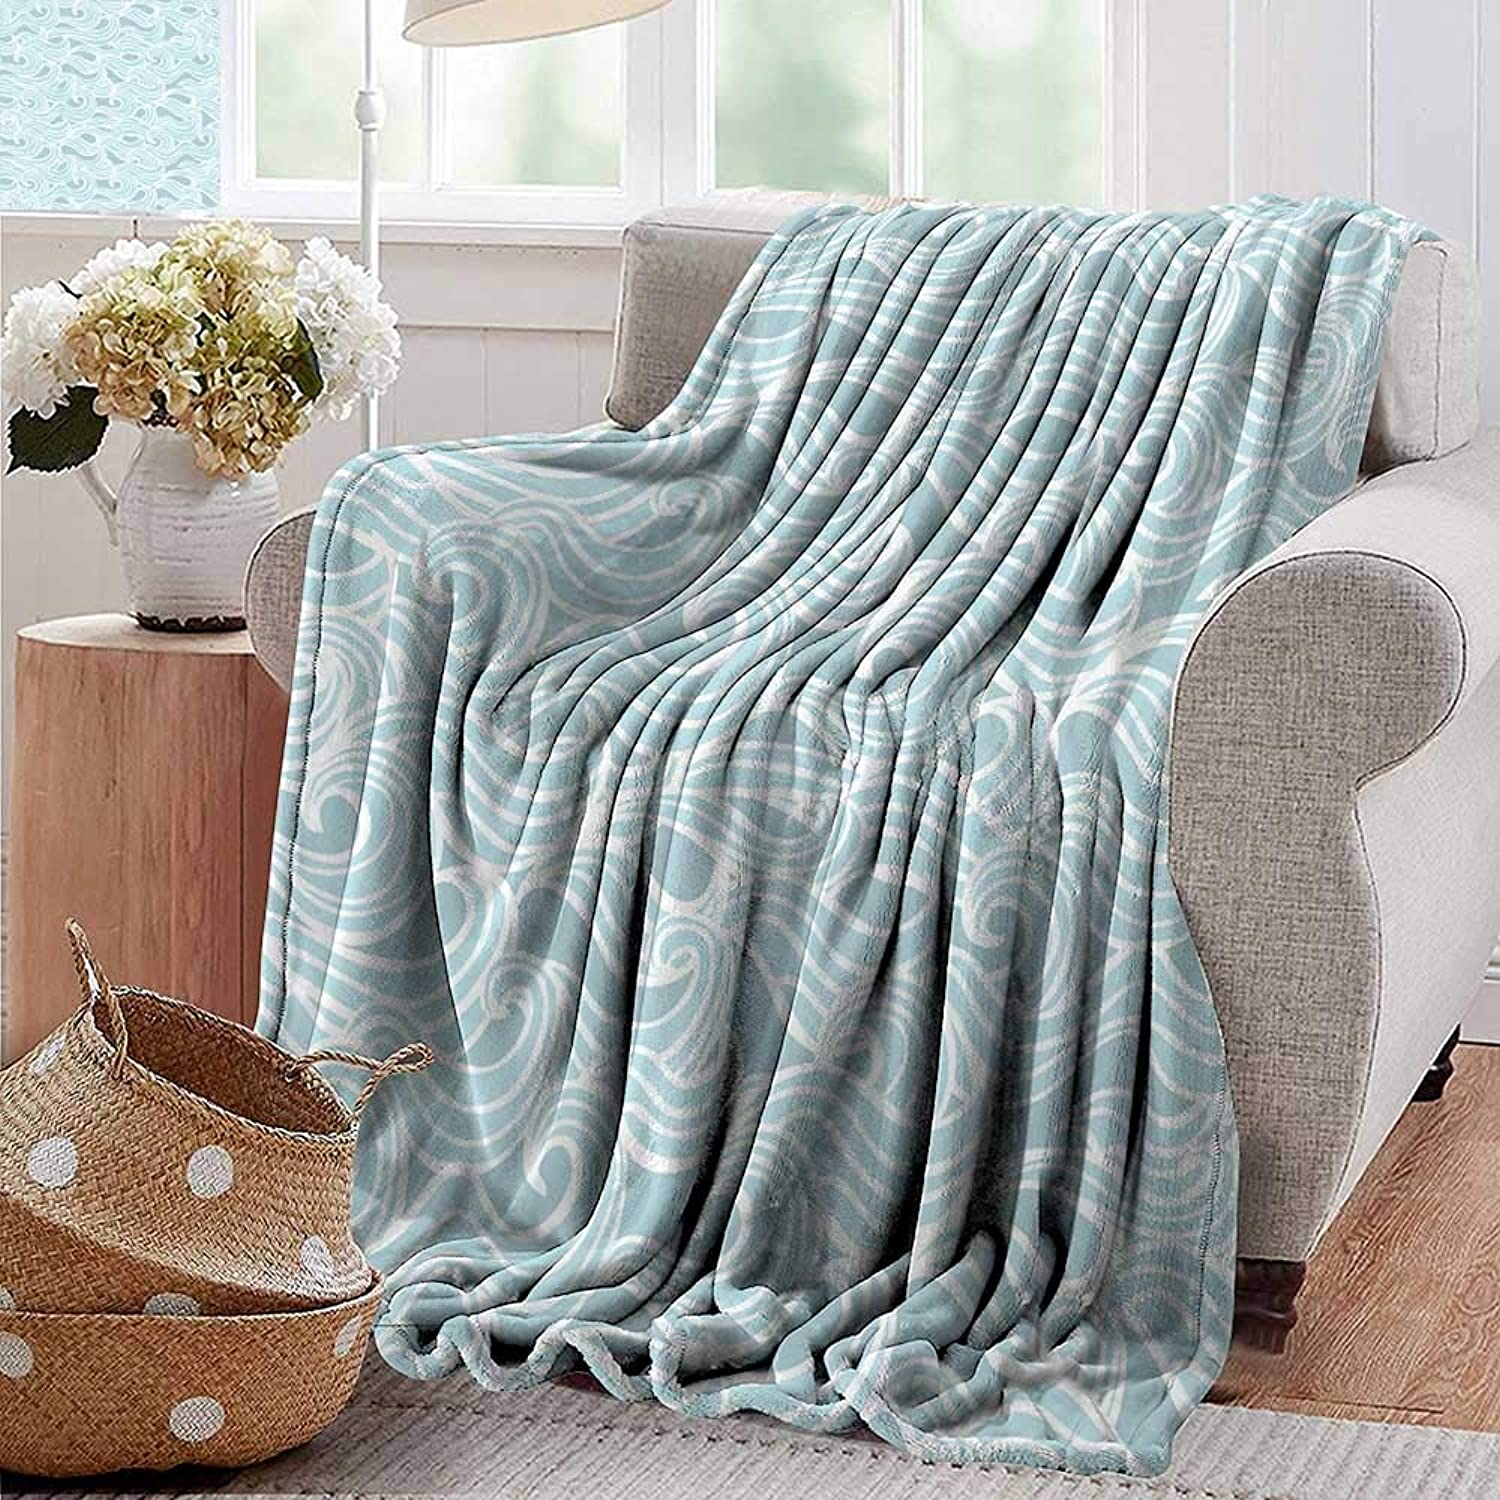 PearlRolan Weighted Blanket for Kids,Aqua,Abstract Ikat Frame Antique Victorian Style Floral Leaves Details Art Print,Seafoam and White,Weighted Blanket for Adults Kids, Better Deeper Sleep 35 x60